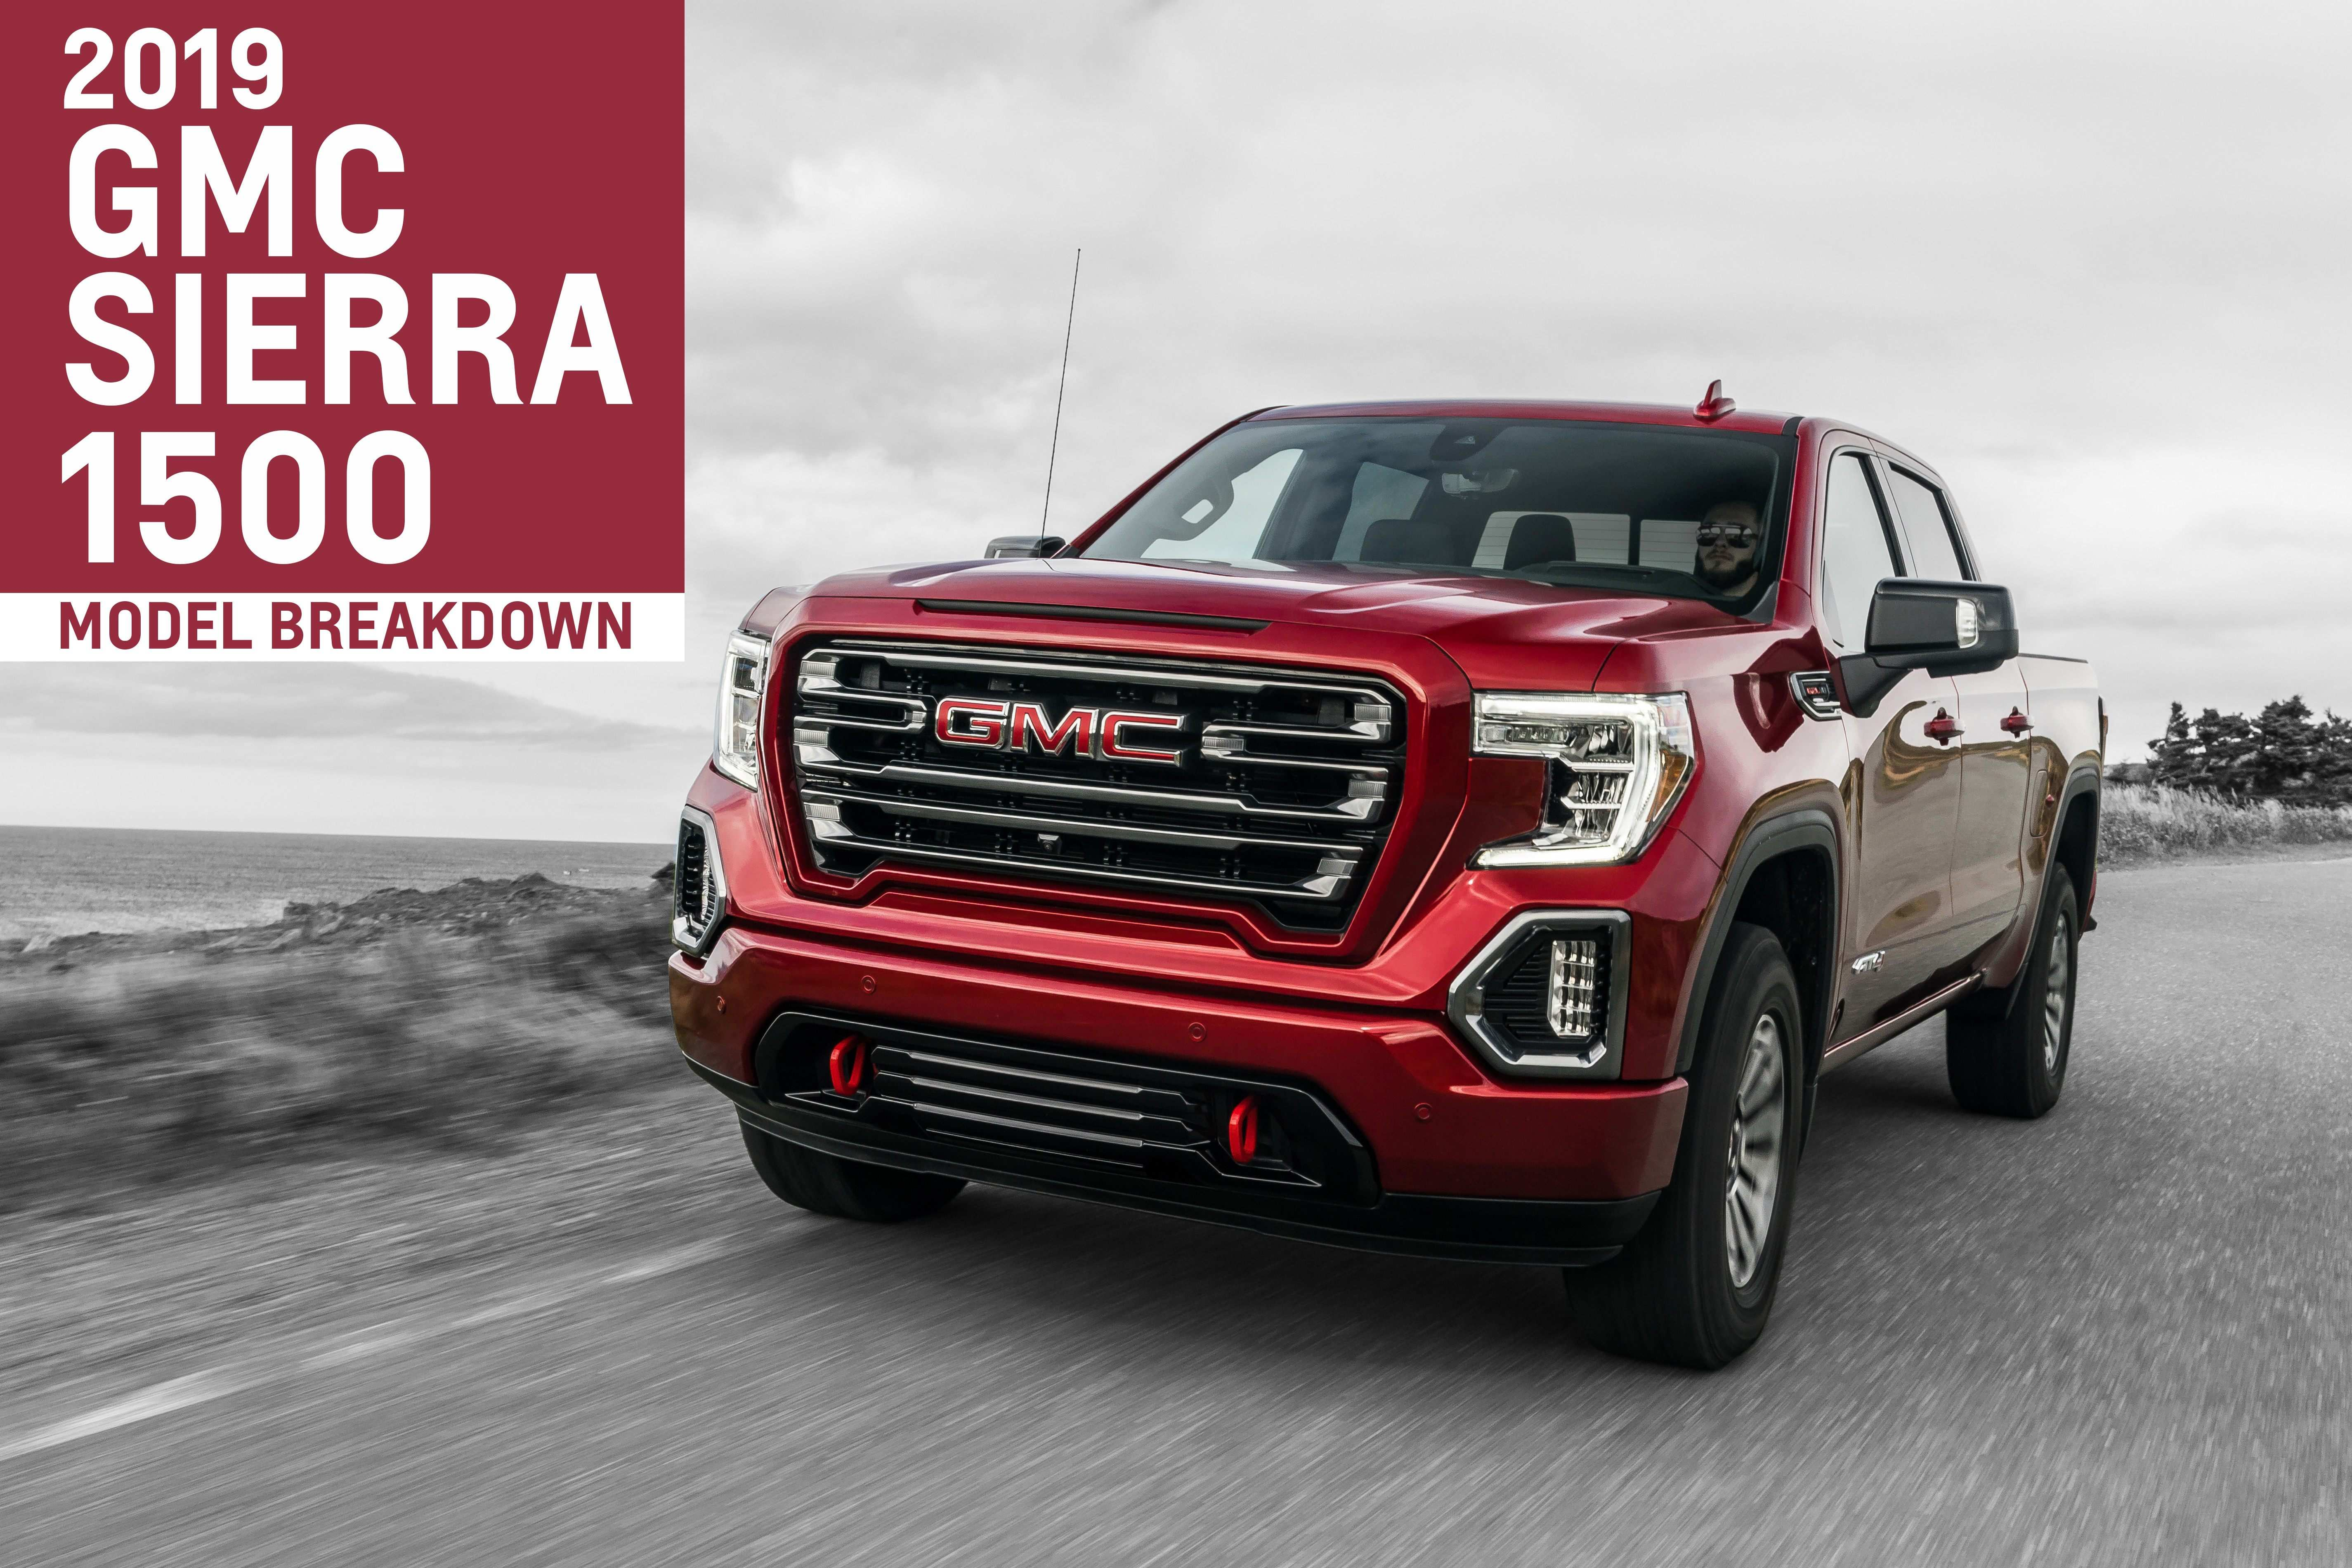 80 All New 2019 Gmc Sierra Images Redesign And Review